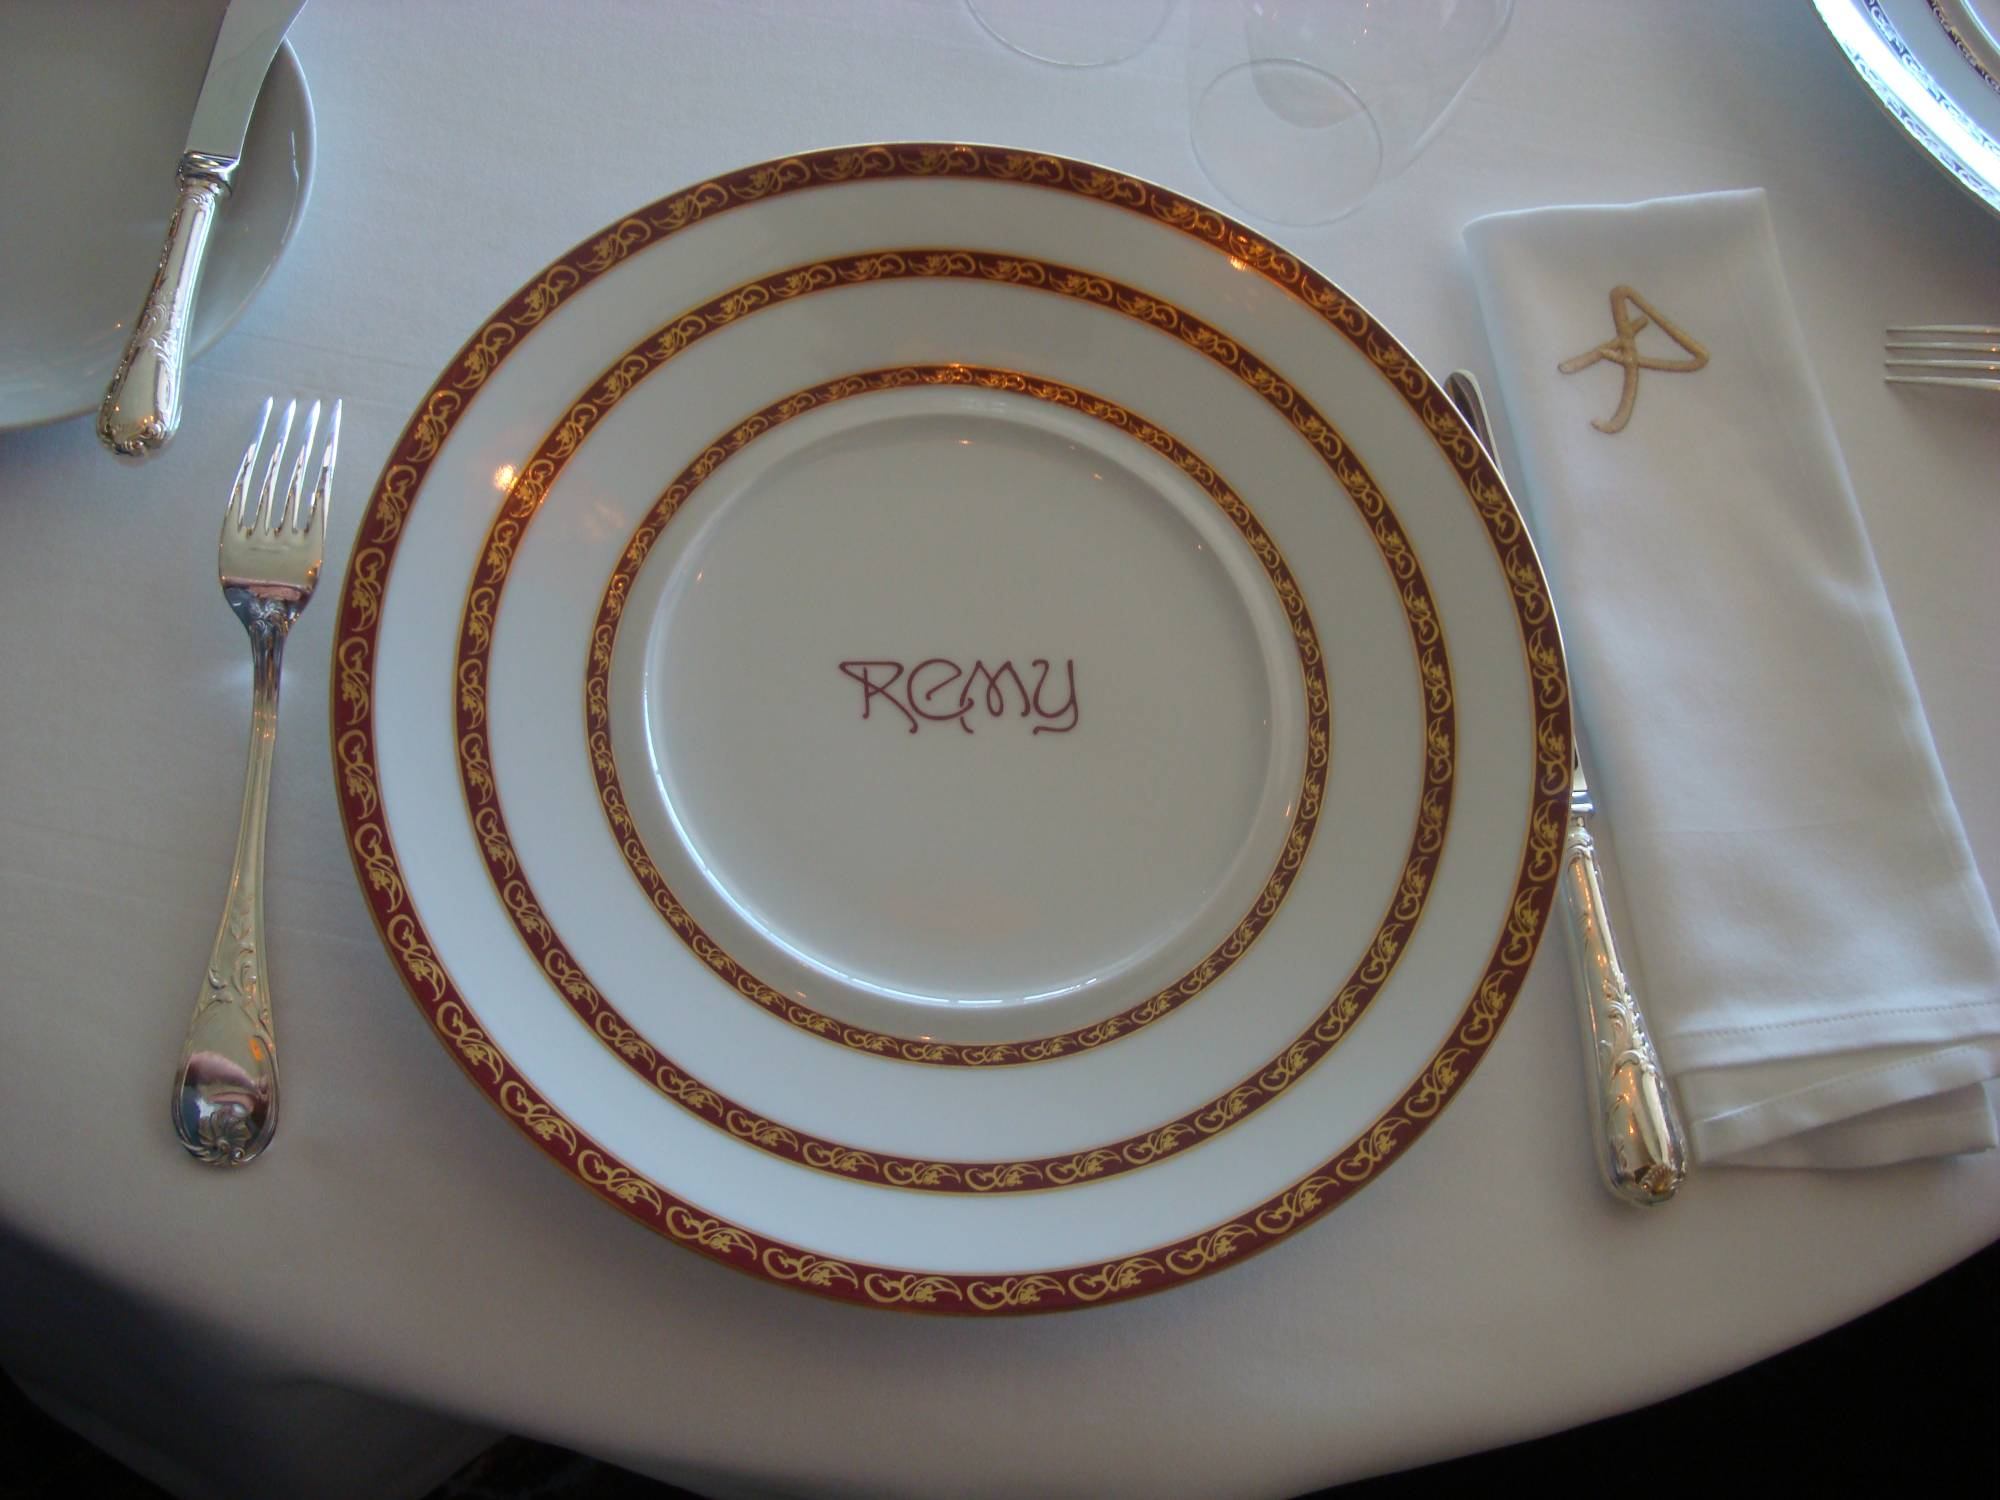 Disney Dream - Remy plate photo